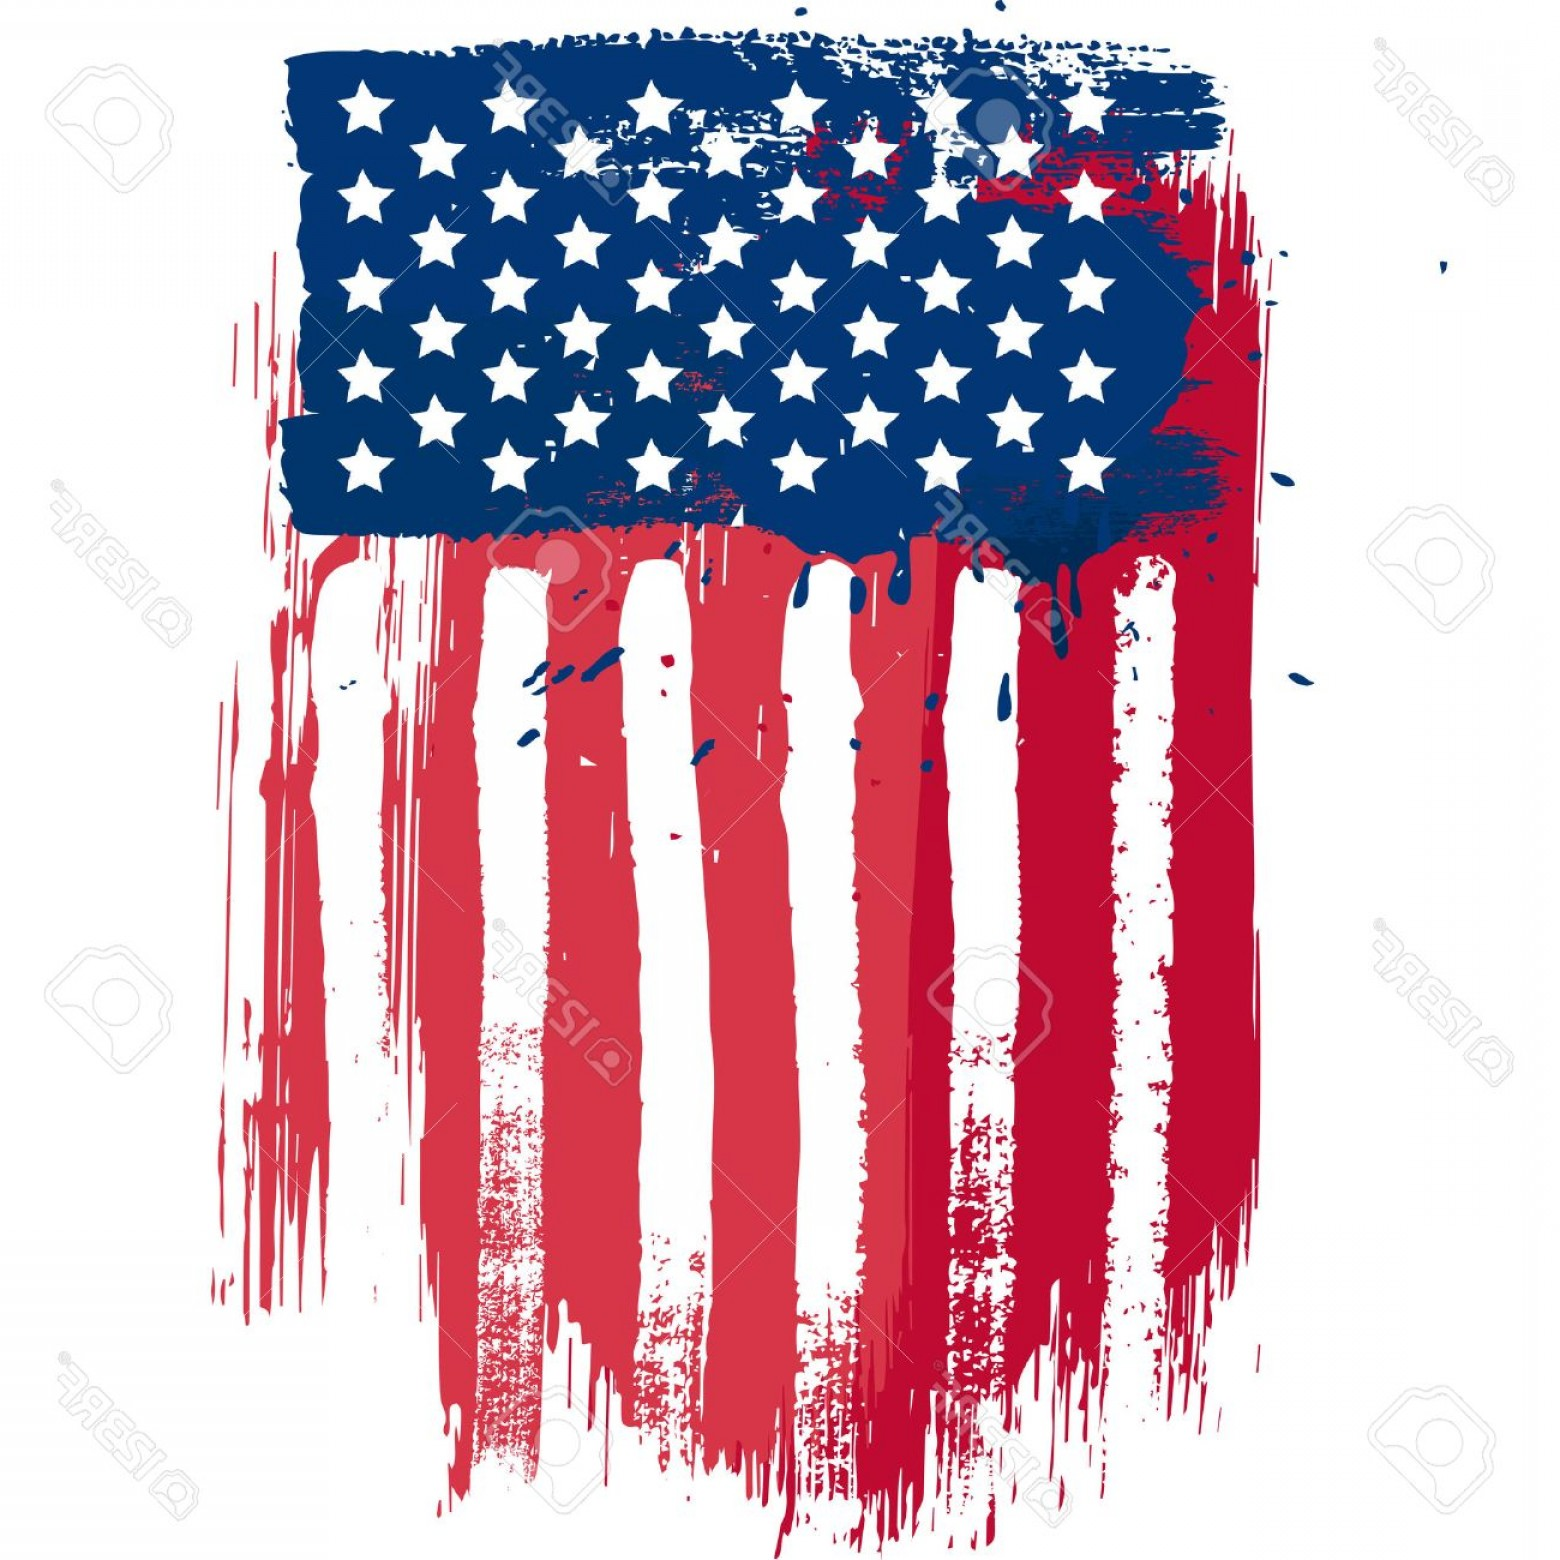 Rustic American Flag Vector: Photostock Vector Vertical Composition Vector American Flag In Grunge Style